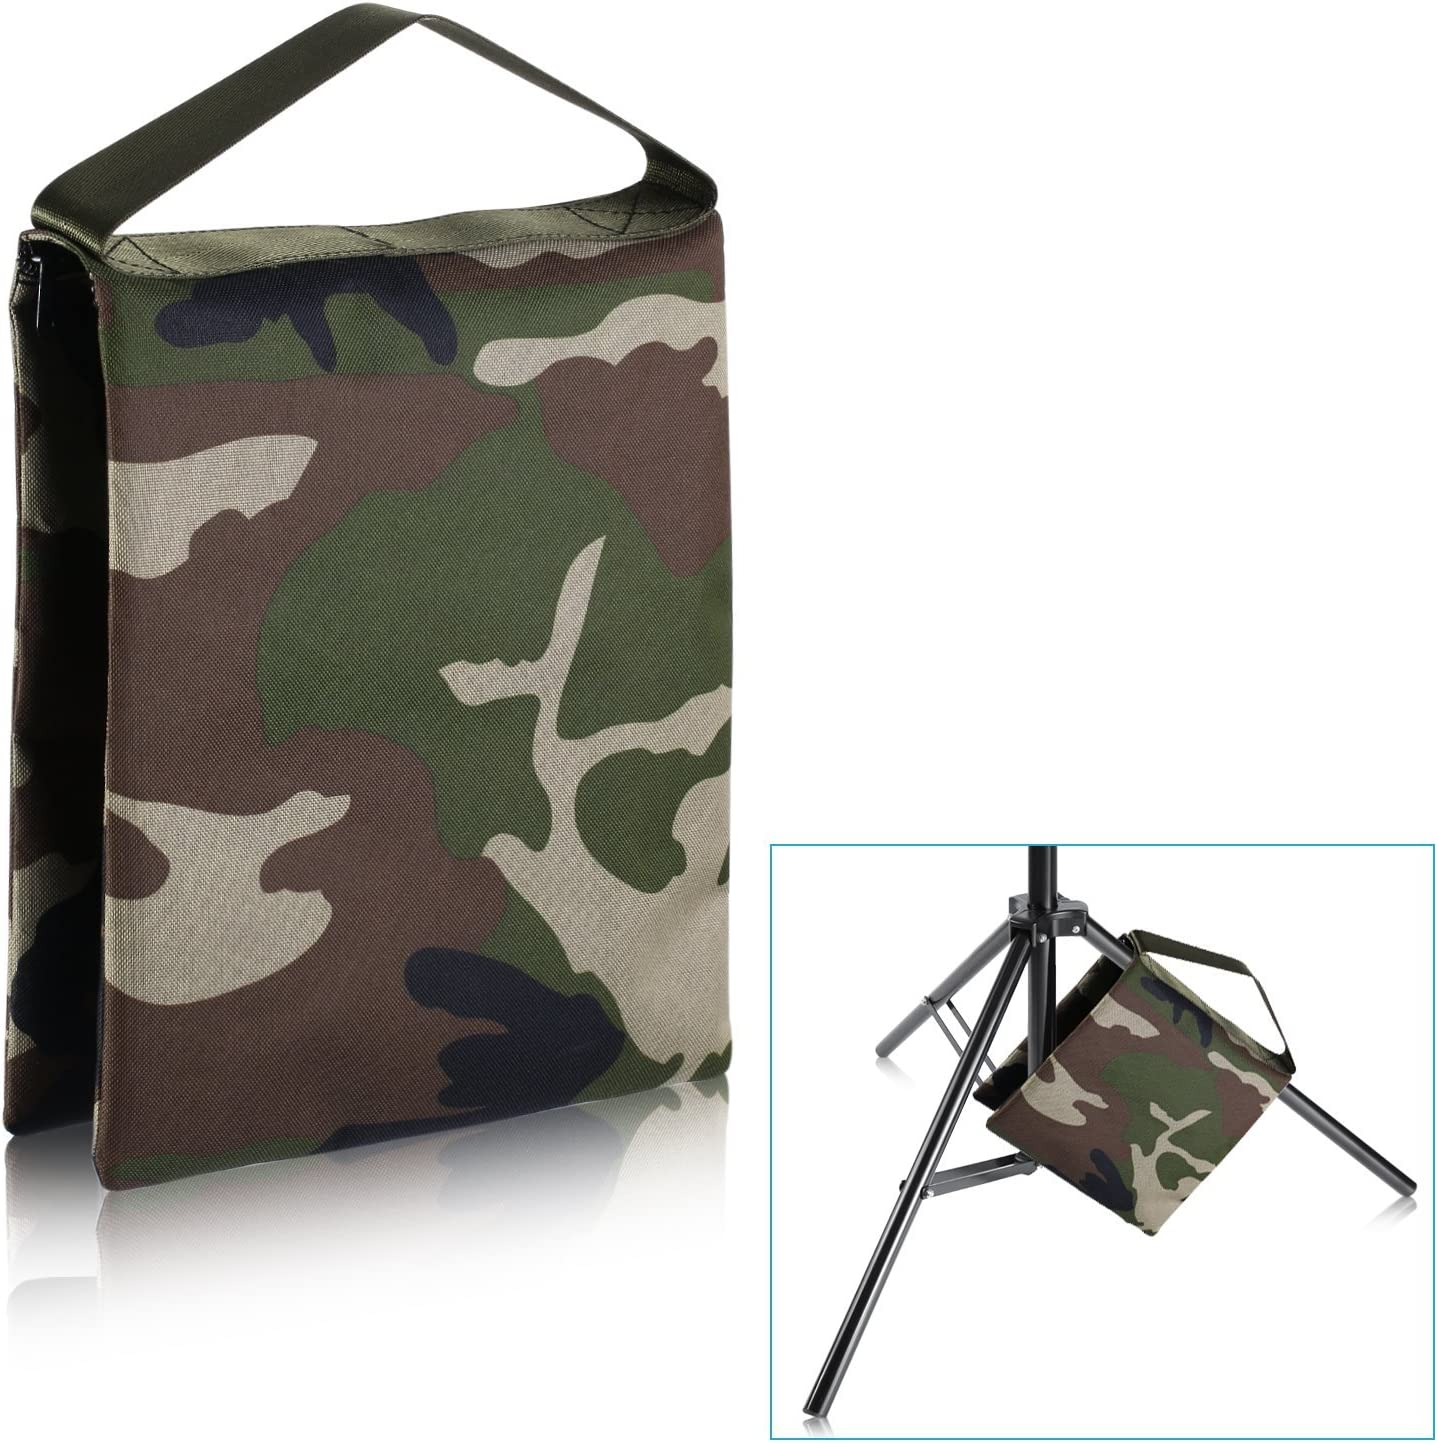 Woodland Camo Tripod Boom Stand Neewer Heavy Duty Photographic Sandbag Studio Video Sand Bag for Light Stands